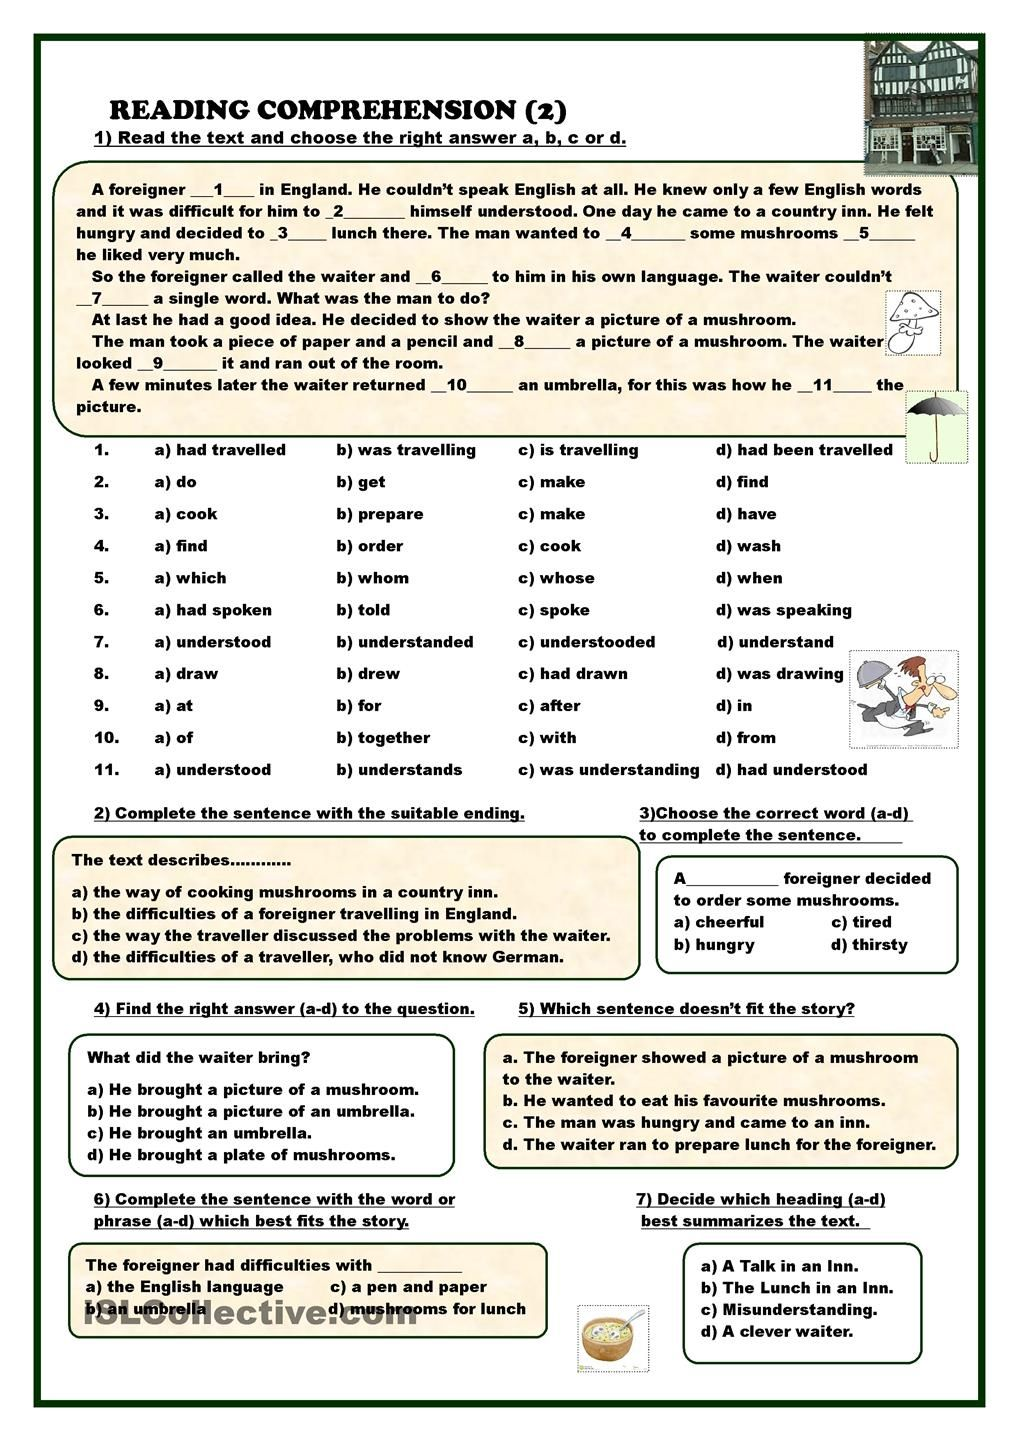 Reading Comprehension 2 Esl Worksheets Of The Day